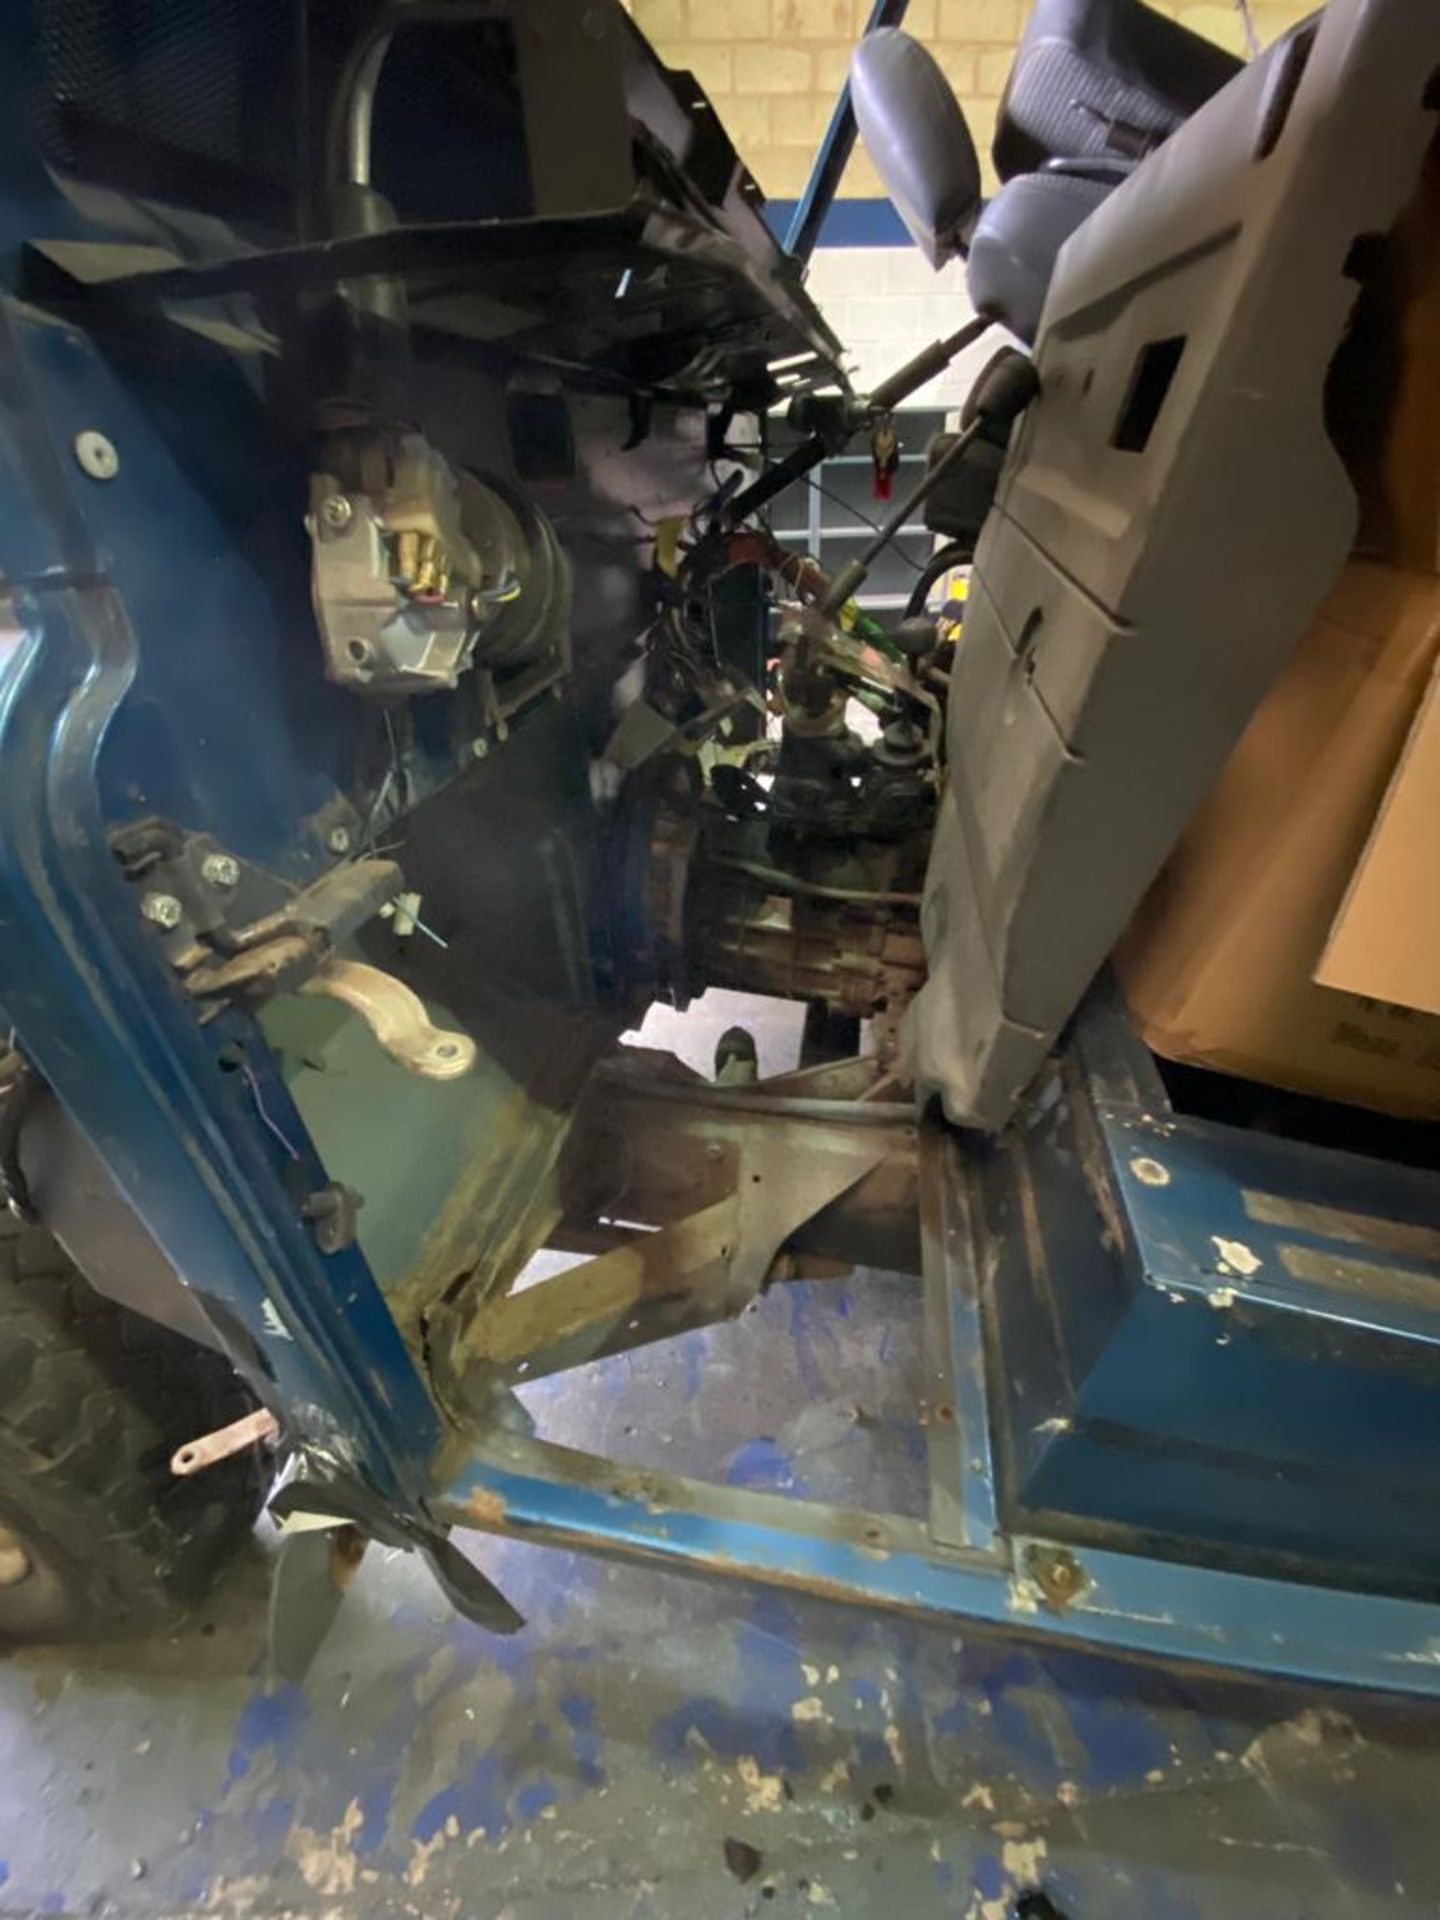 Land Rover 110 County, 300 TDI Engine Appears Mostly Complete - No Bumper, Bonnet, Glass etc As - Image 9 of 26